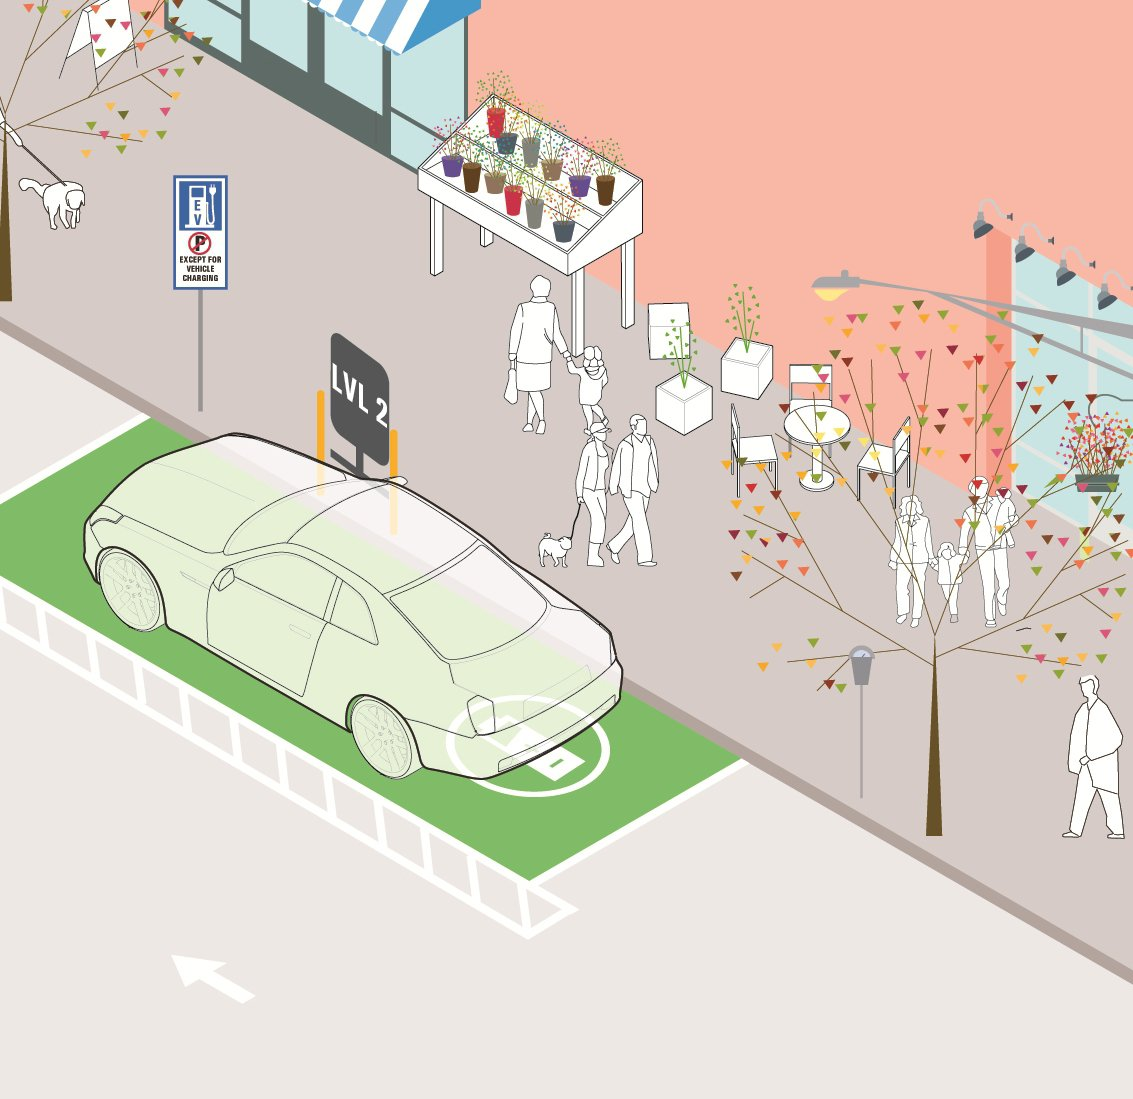 A Regional Plan for Electric Vehicle Charging Infrastructure